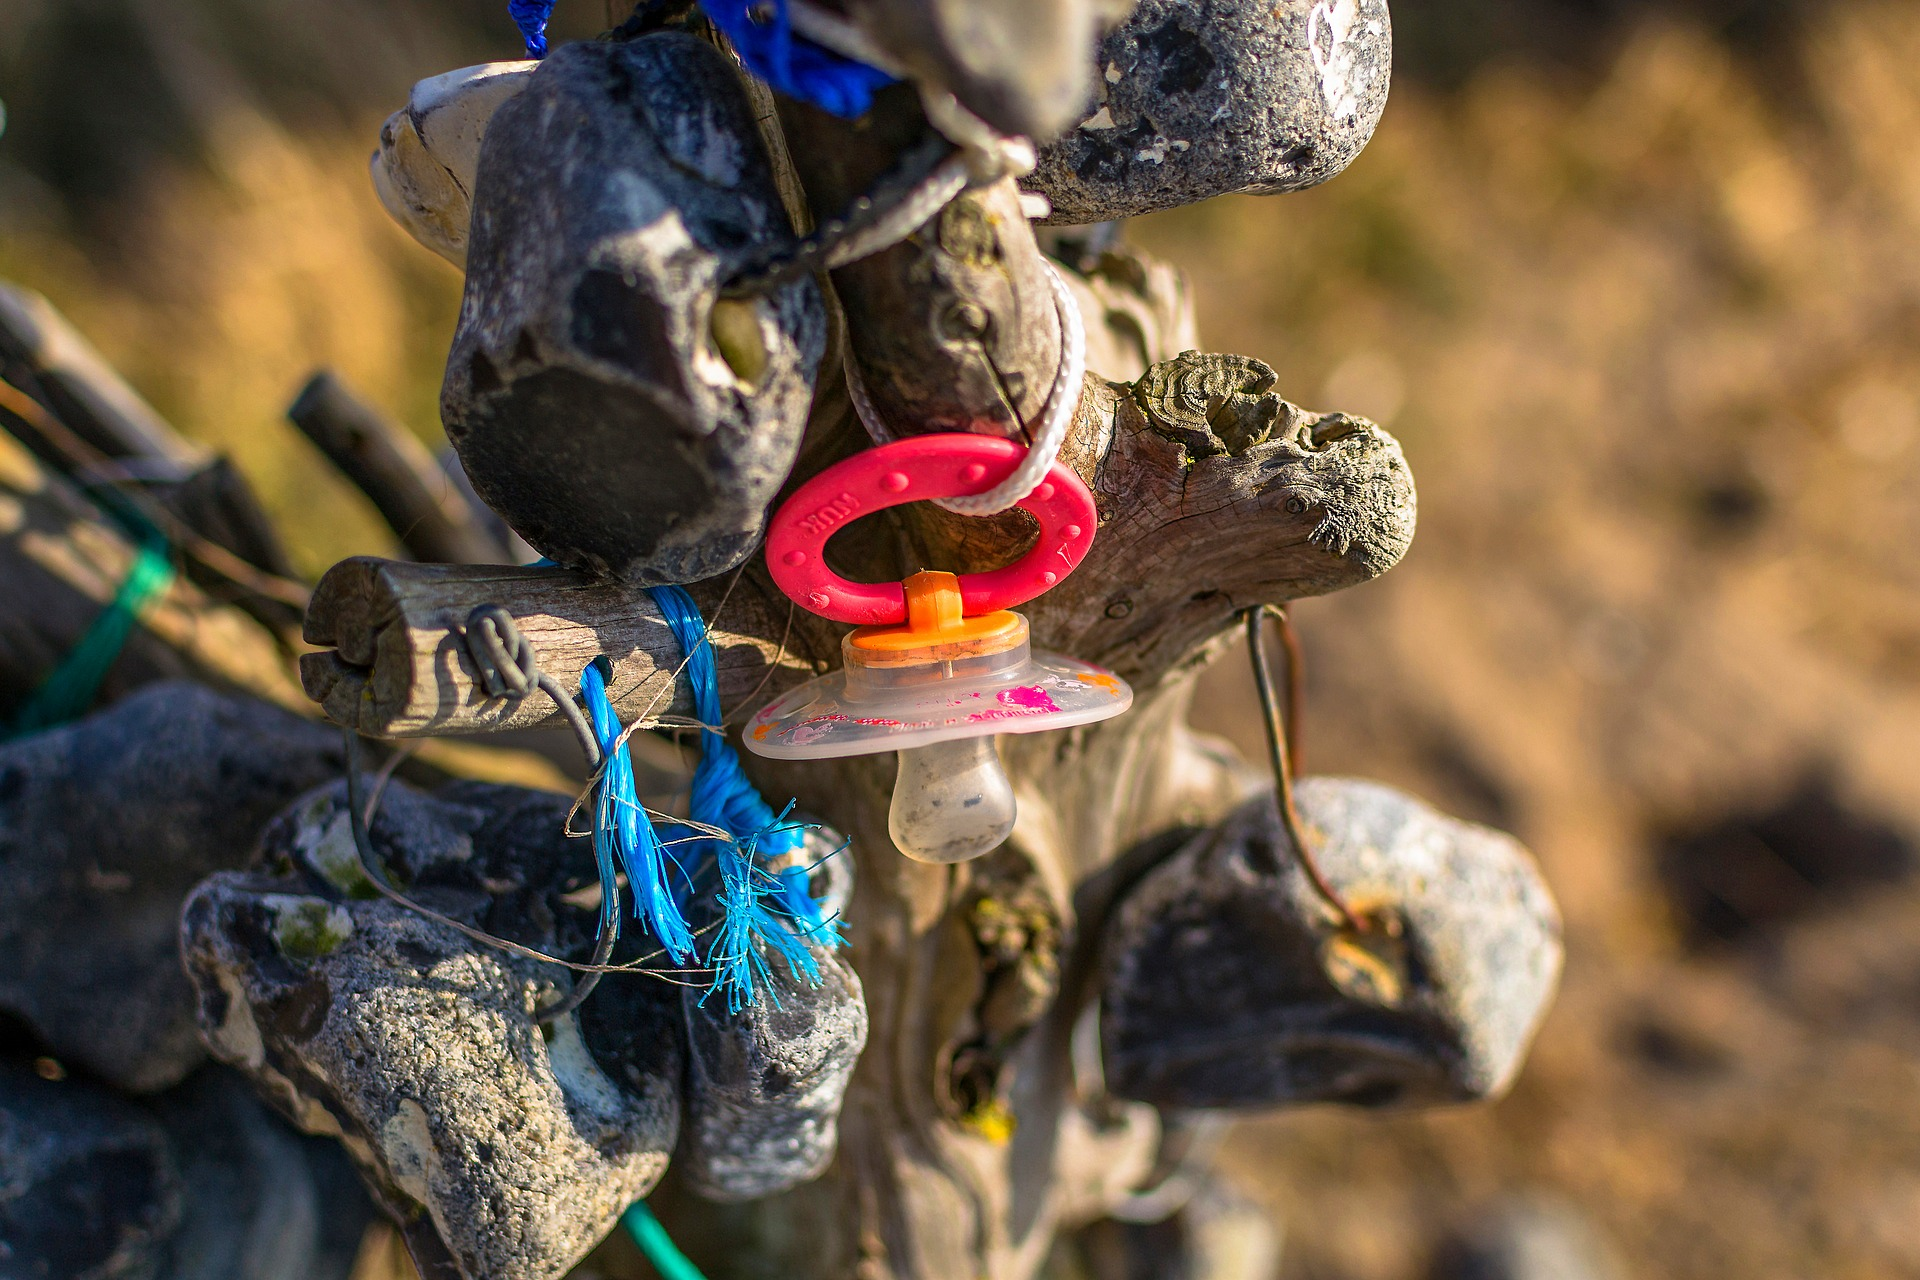 A weathered child's dummy hangs on a piece of driftwood along with other pieces of plastic waste